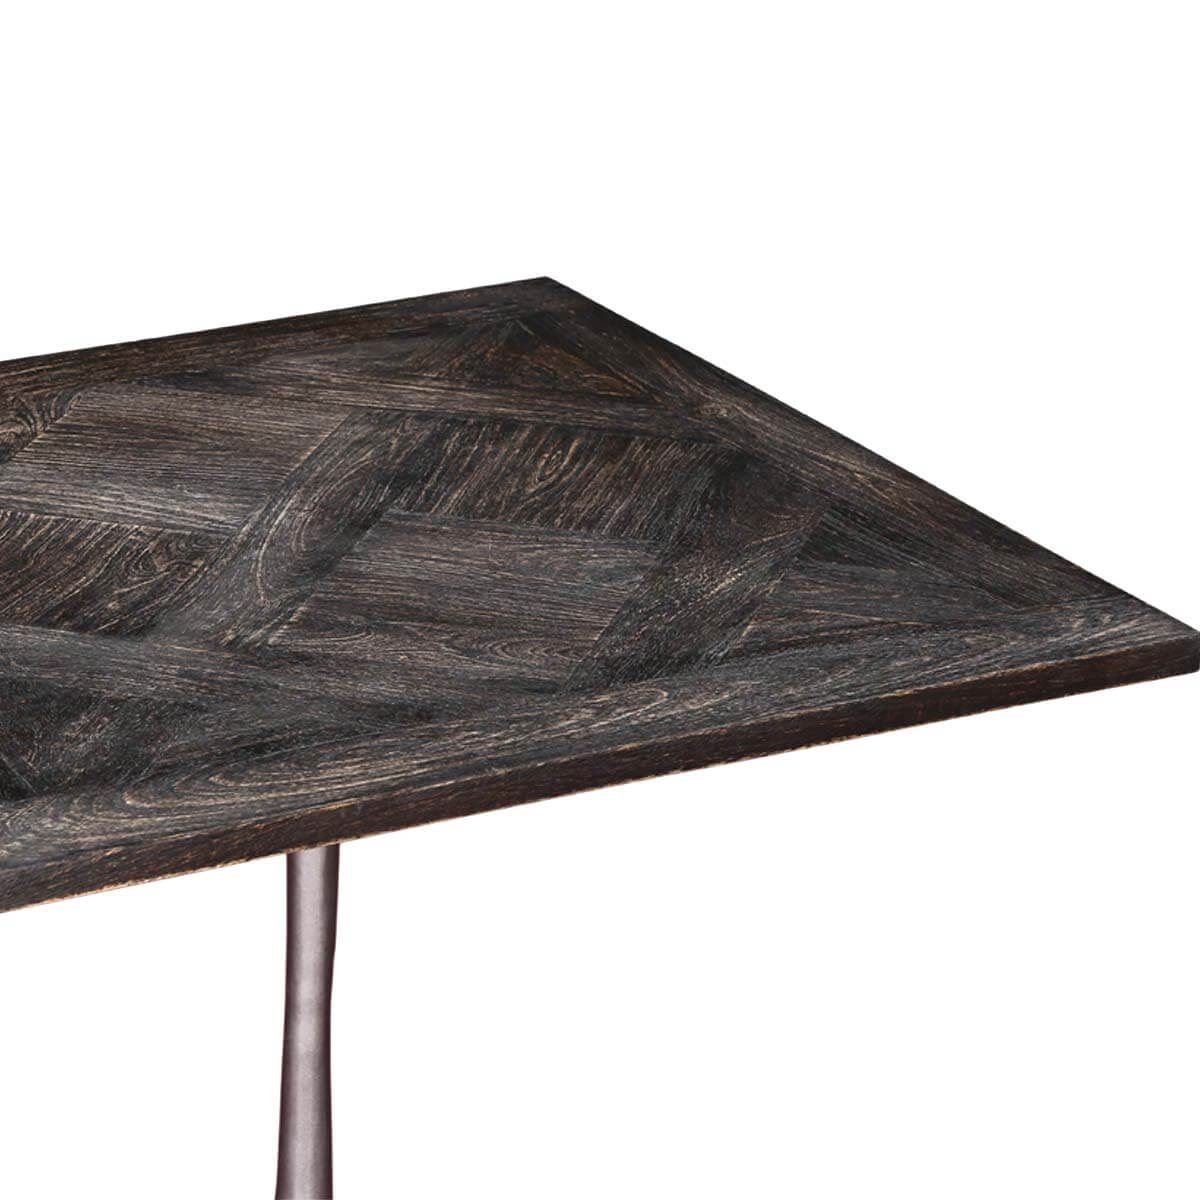 Industrial Cafe Mango Wood amp Iron 31 Square Dinette Table : 82544 from www.sierralivingconcepts.com size 1200 x 1200 jpeg 116kB